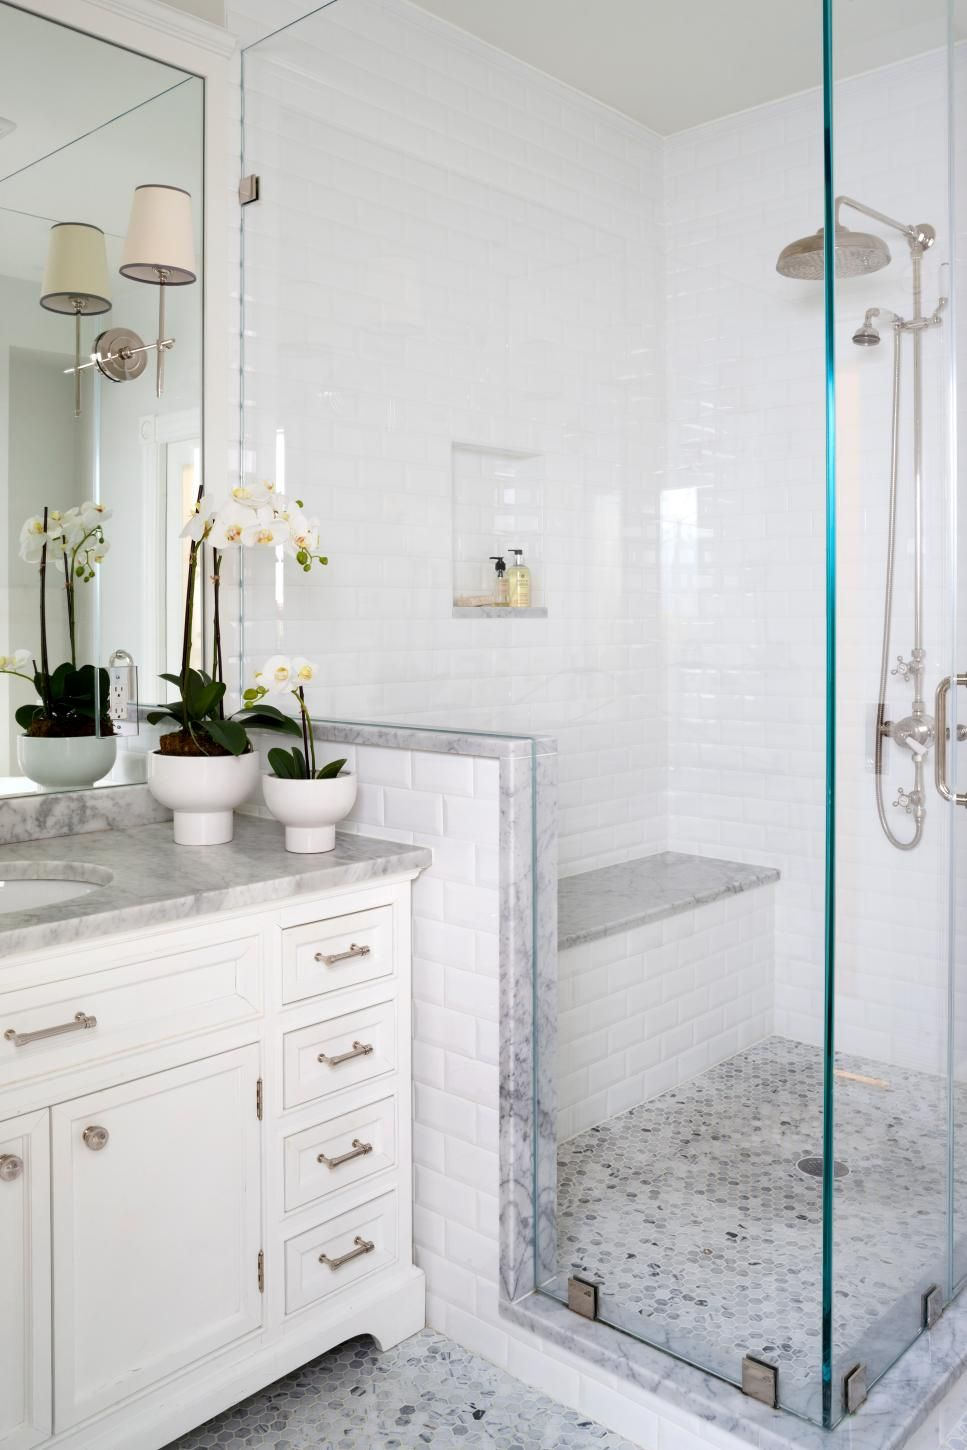 A Glass Enclosed Shower Is Fitted With A Bench Is This Traditional